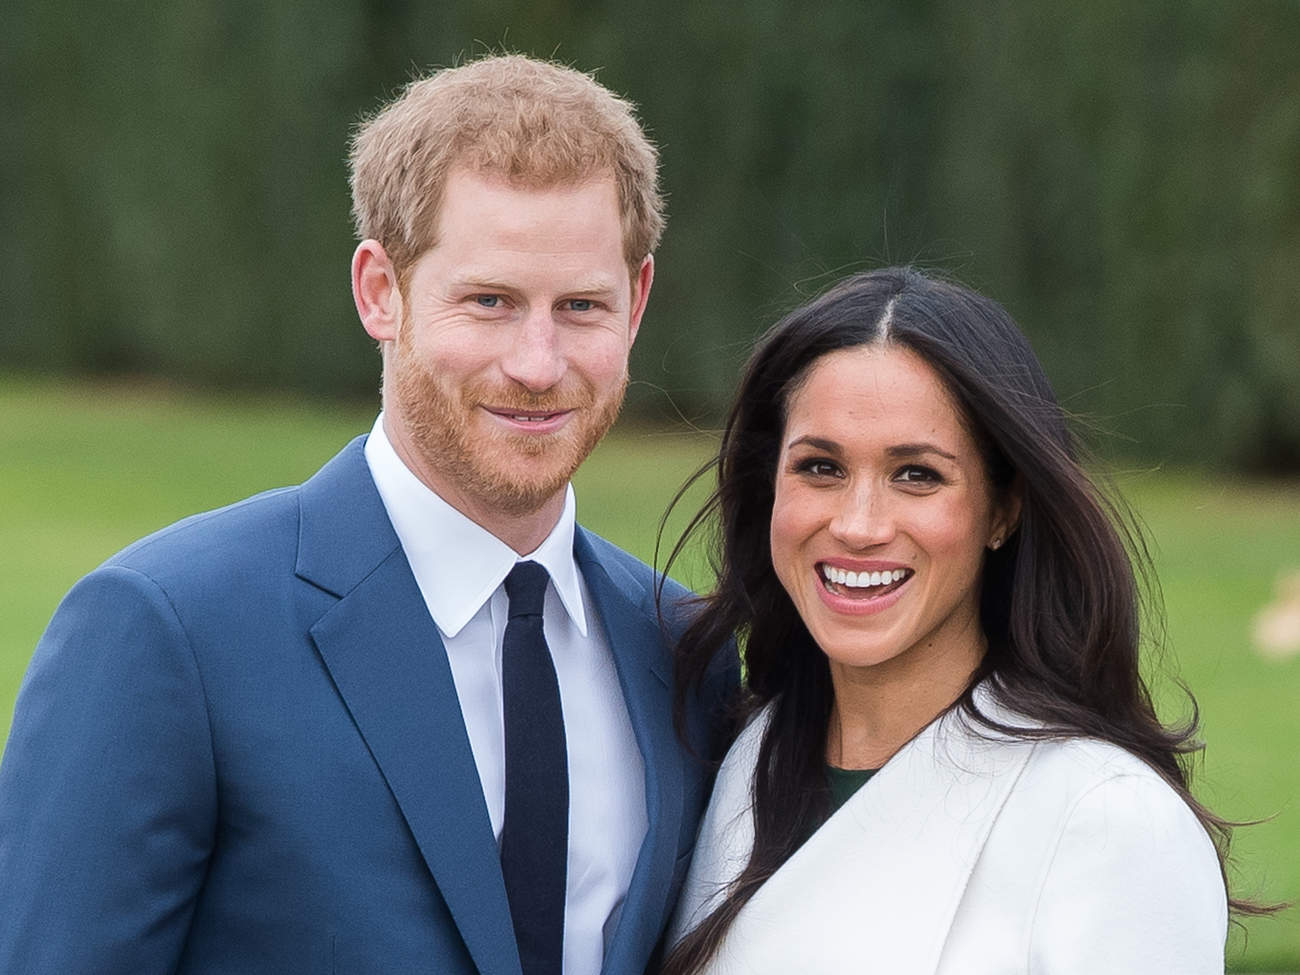 prince harry and meghan markle happy engagement